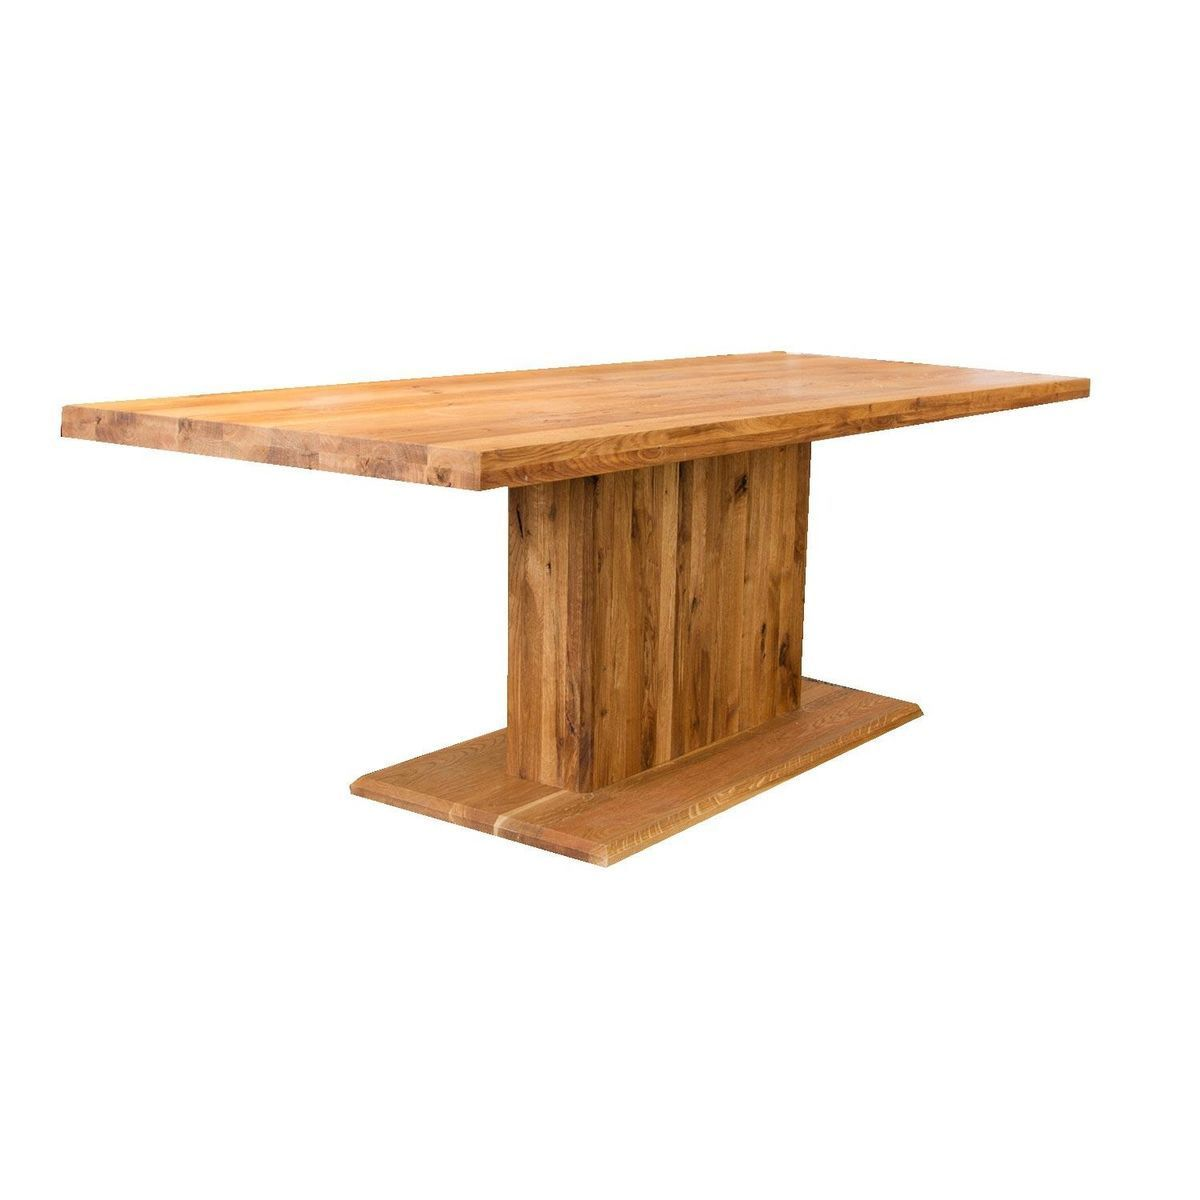 Ozelot Dining Table With Central Support | ADWOOD | AmbienteDirect.com